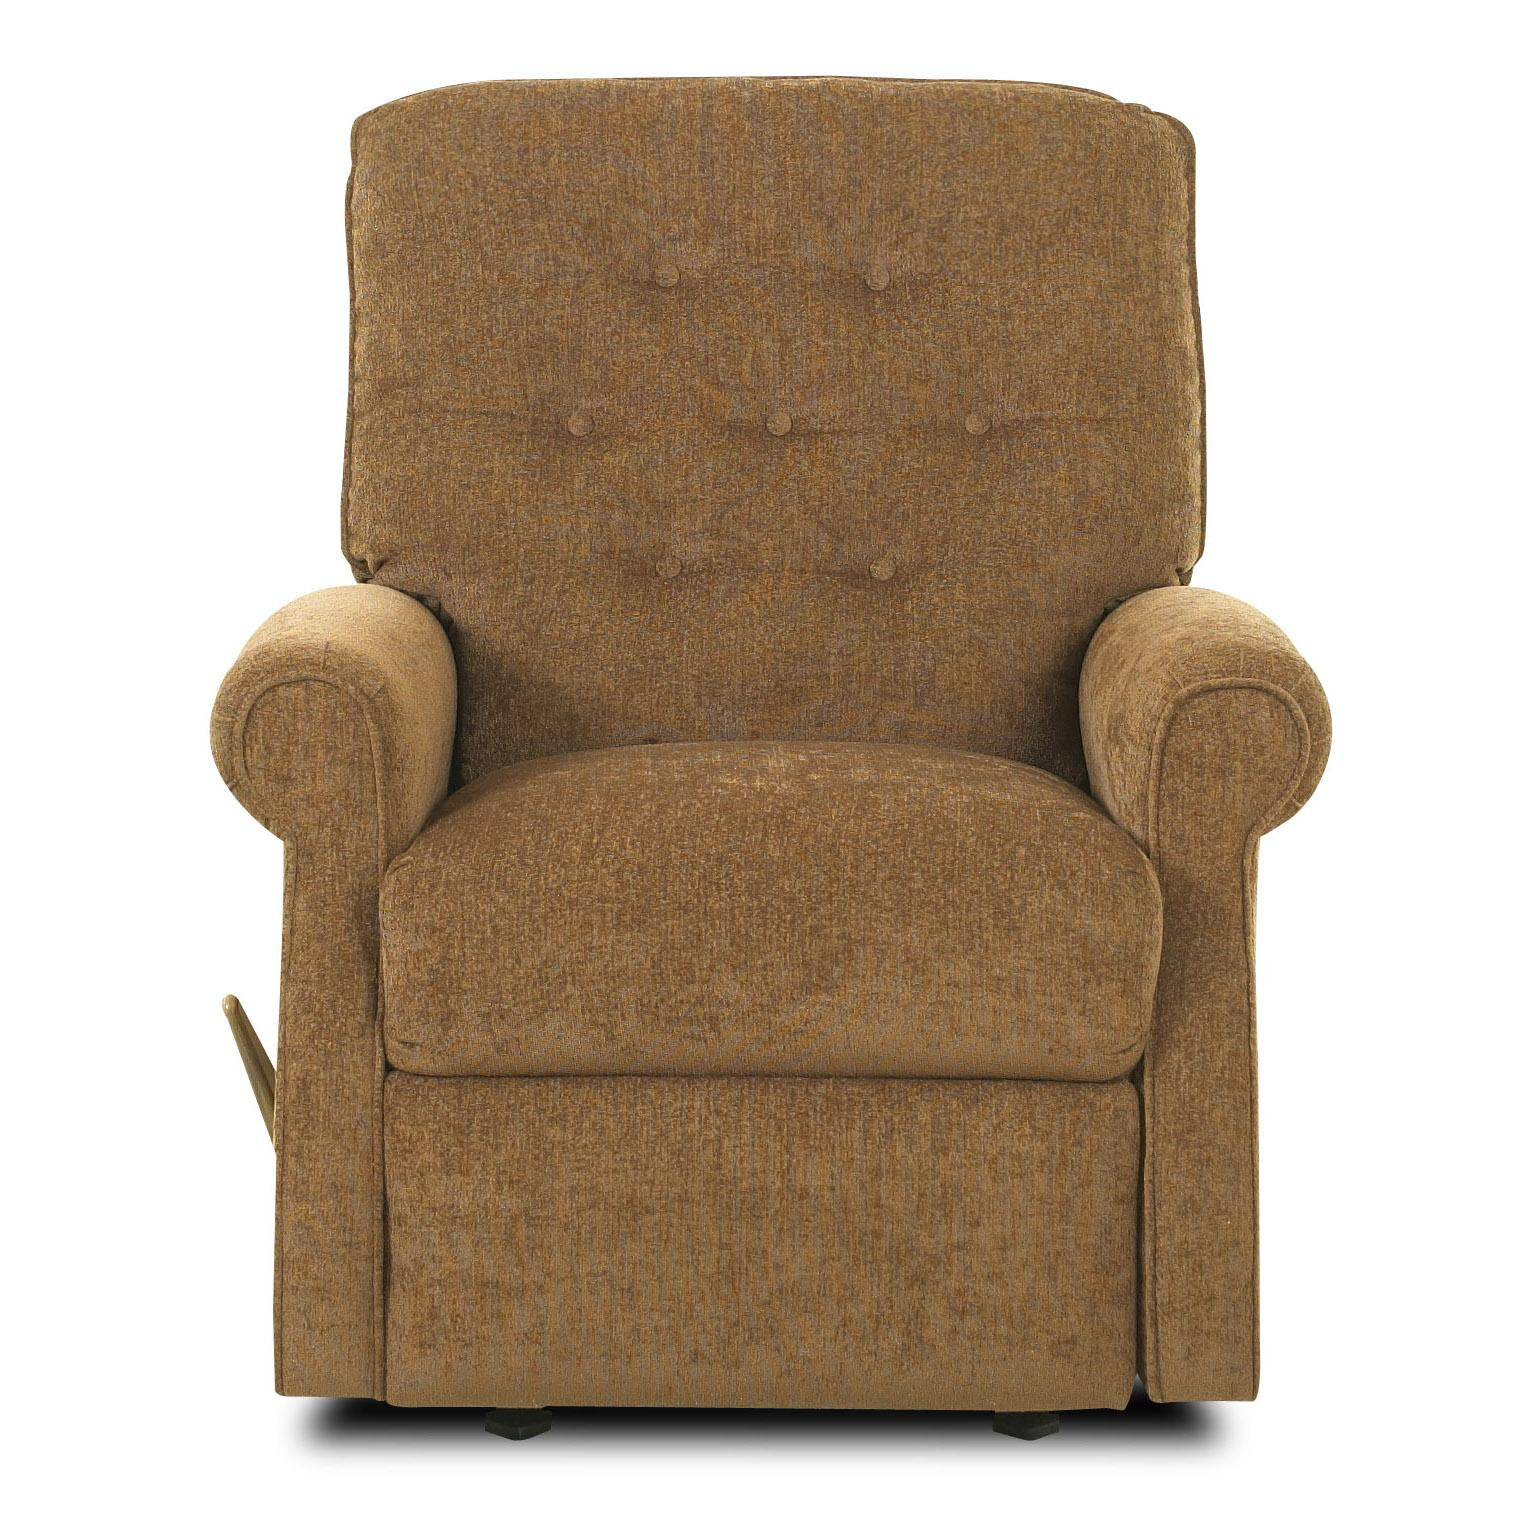 Klaussner Recliners Virgo Swivel Gliding Reclining Chair - Item Number: 46703H SGRC